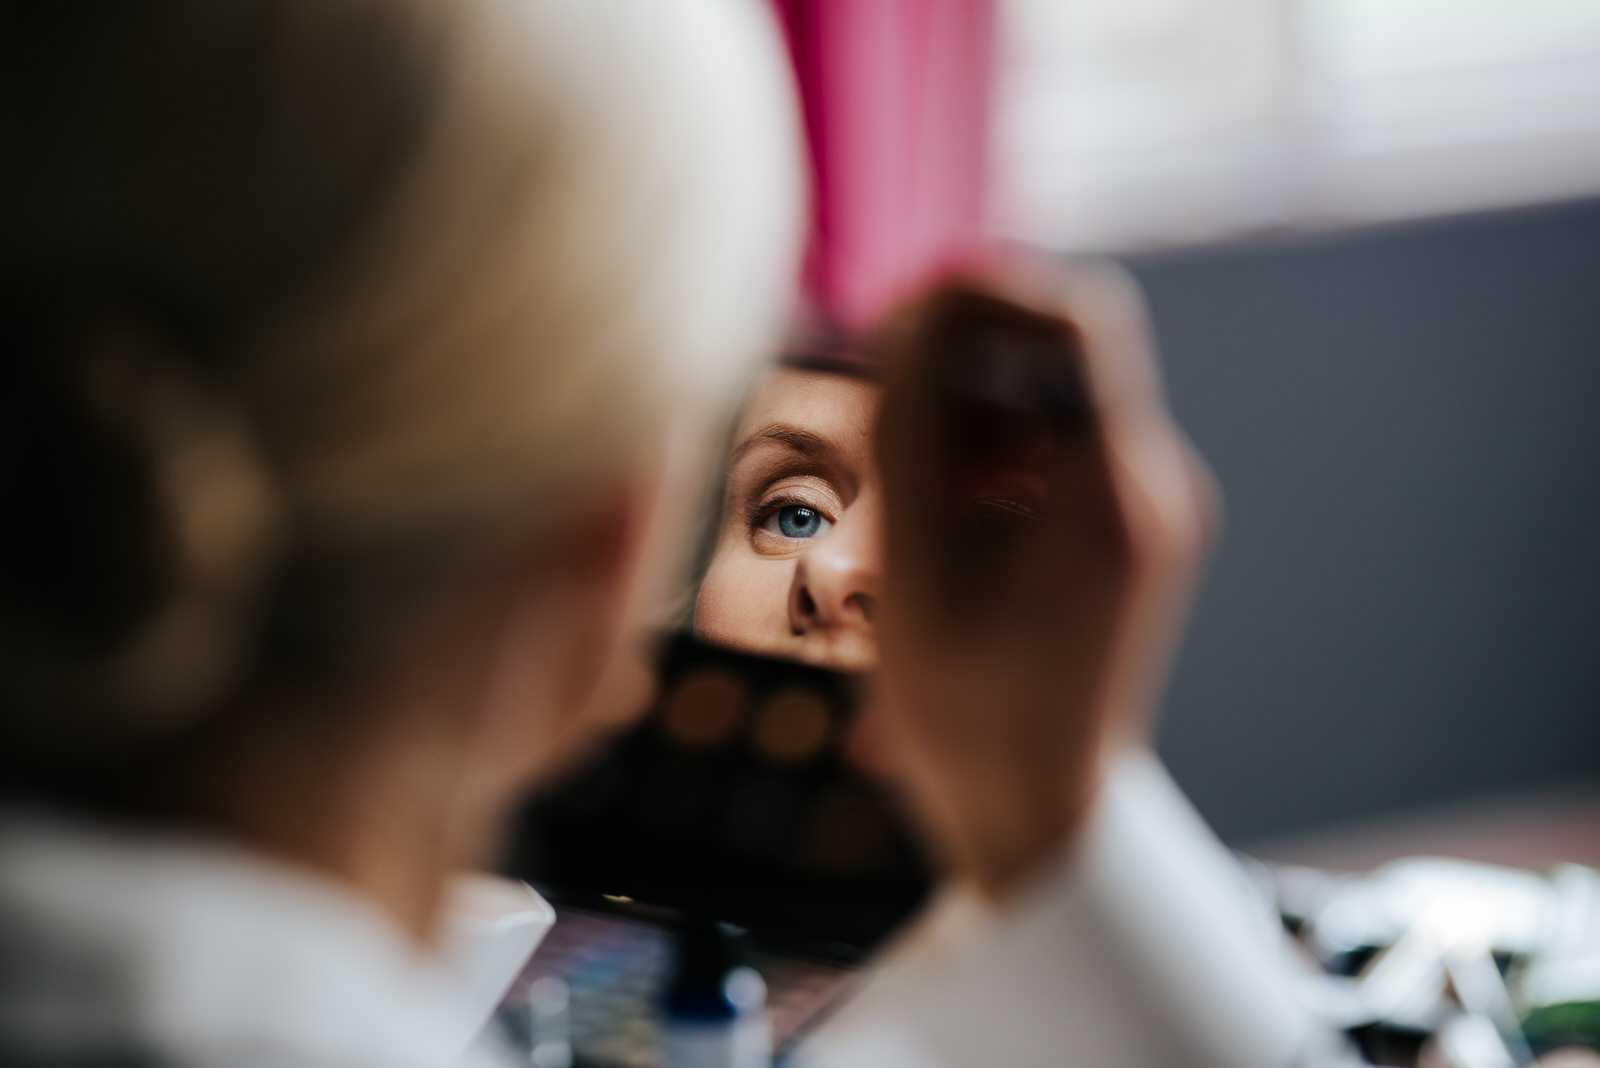 Bride's eye reflected in a small mirror as she focusedly applies makeup to her eyebrows